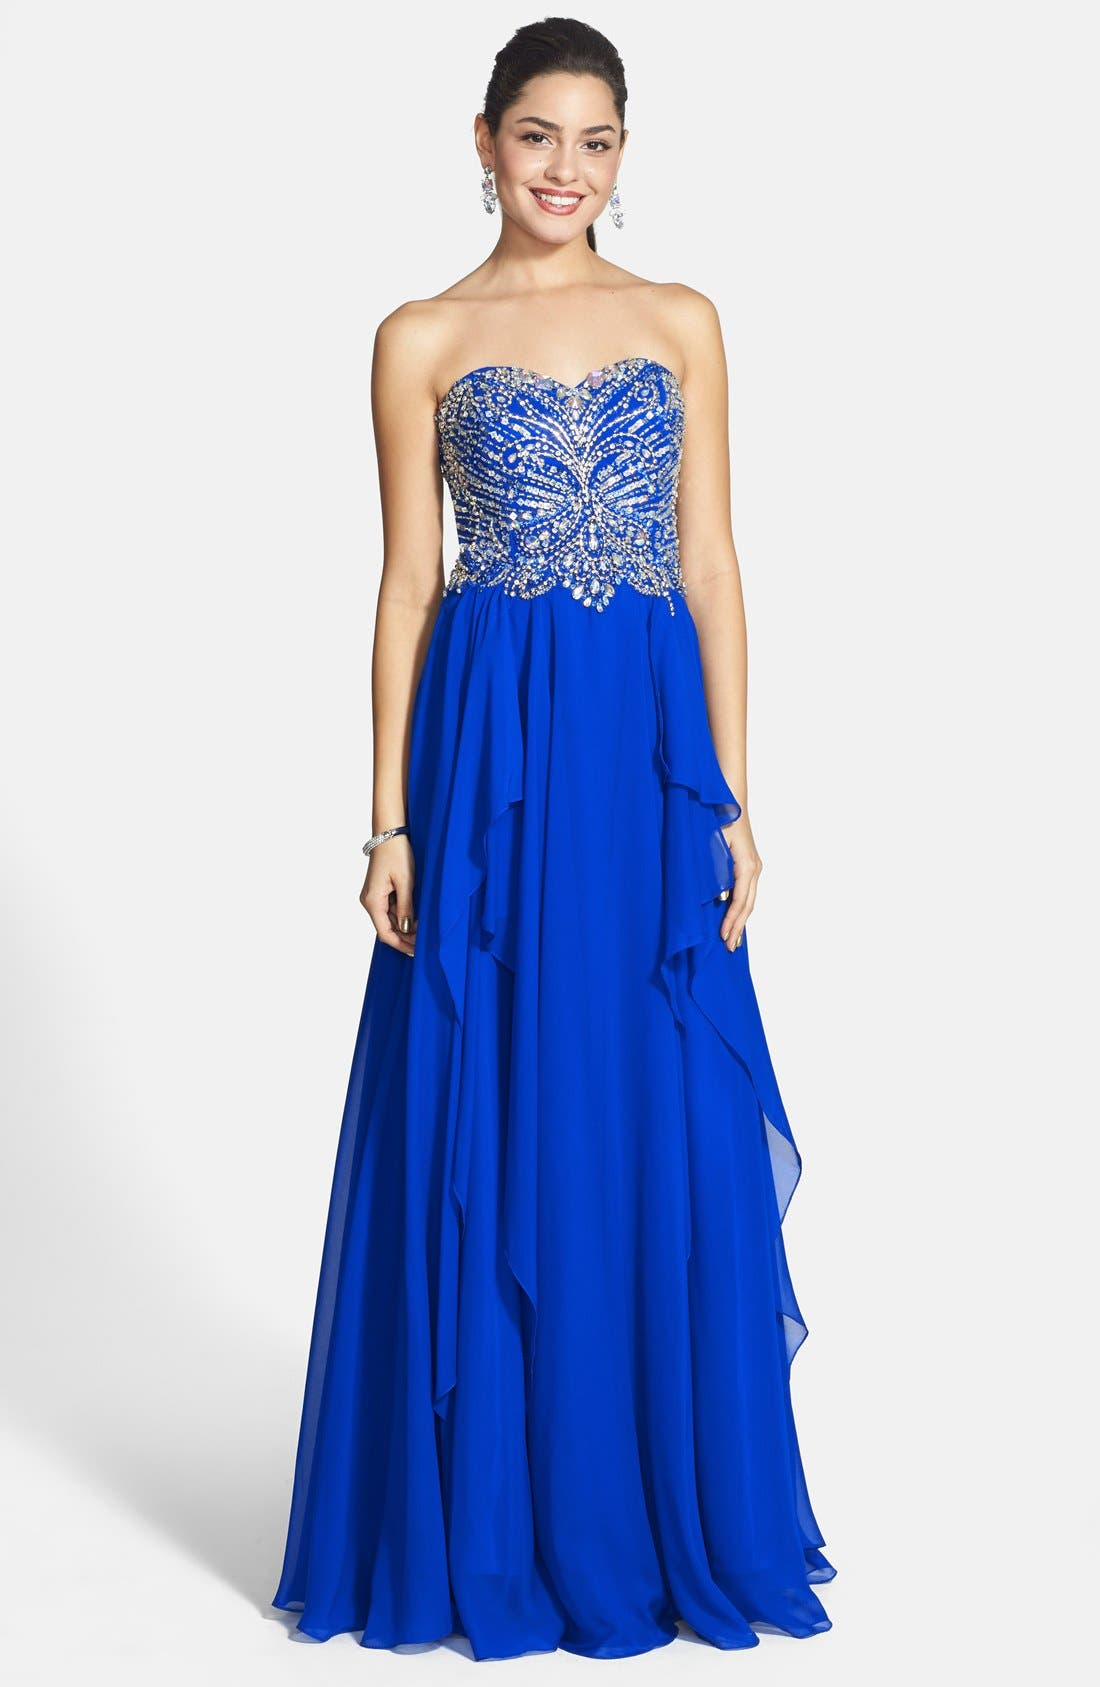 Alternate Image 1 Selected - Alyce Paris Embellished Layered Chiffon Strapless Gown